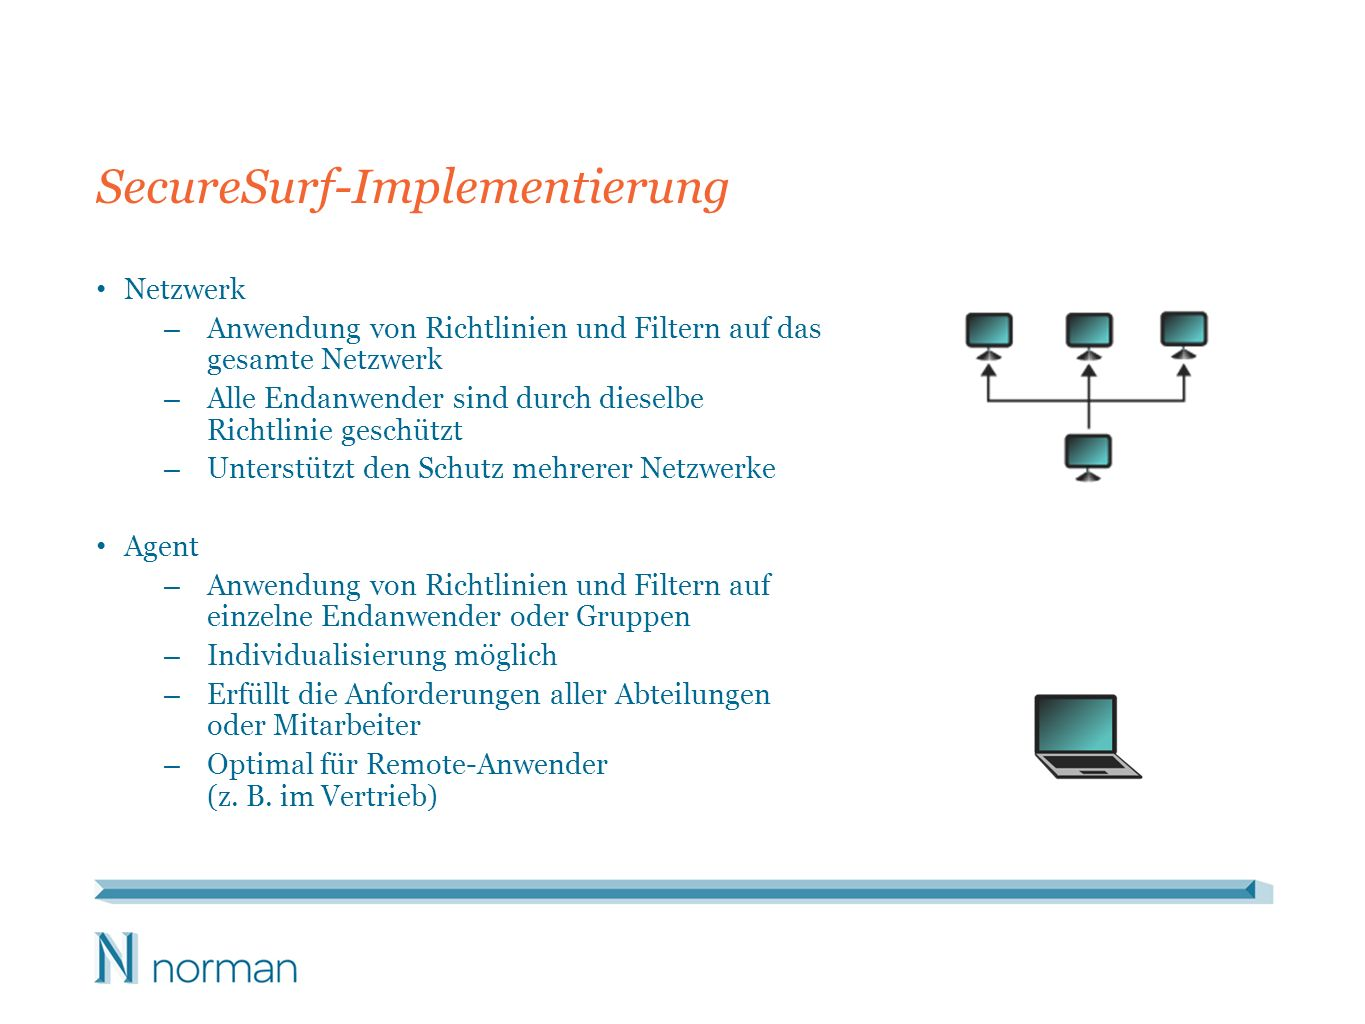 SecureSurf-Implementierung